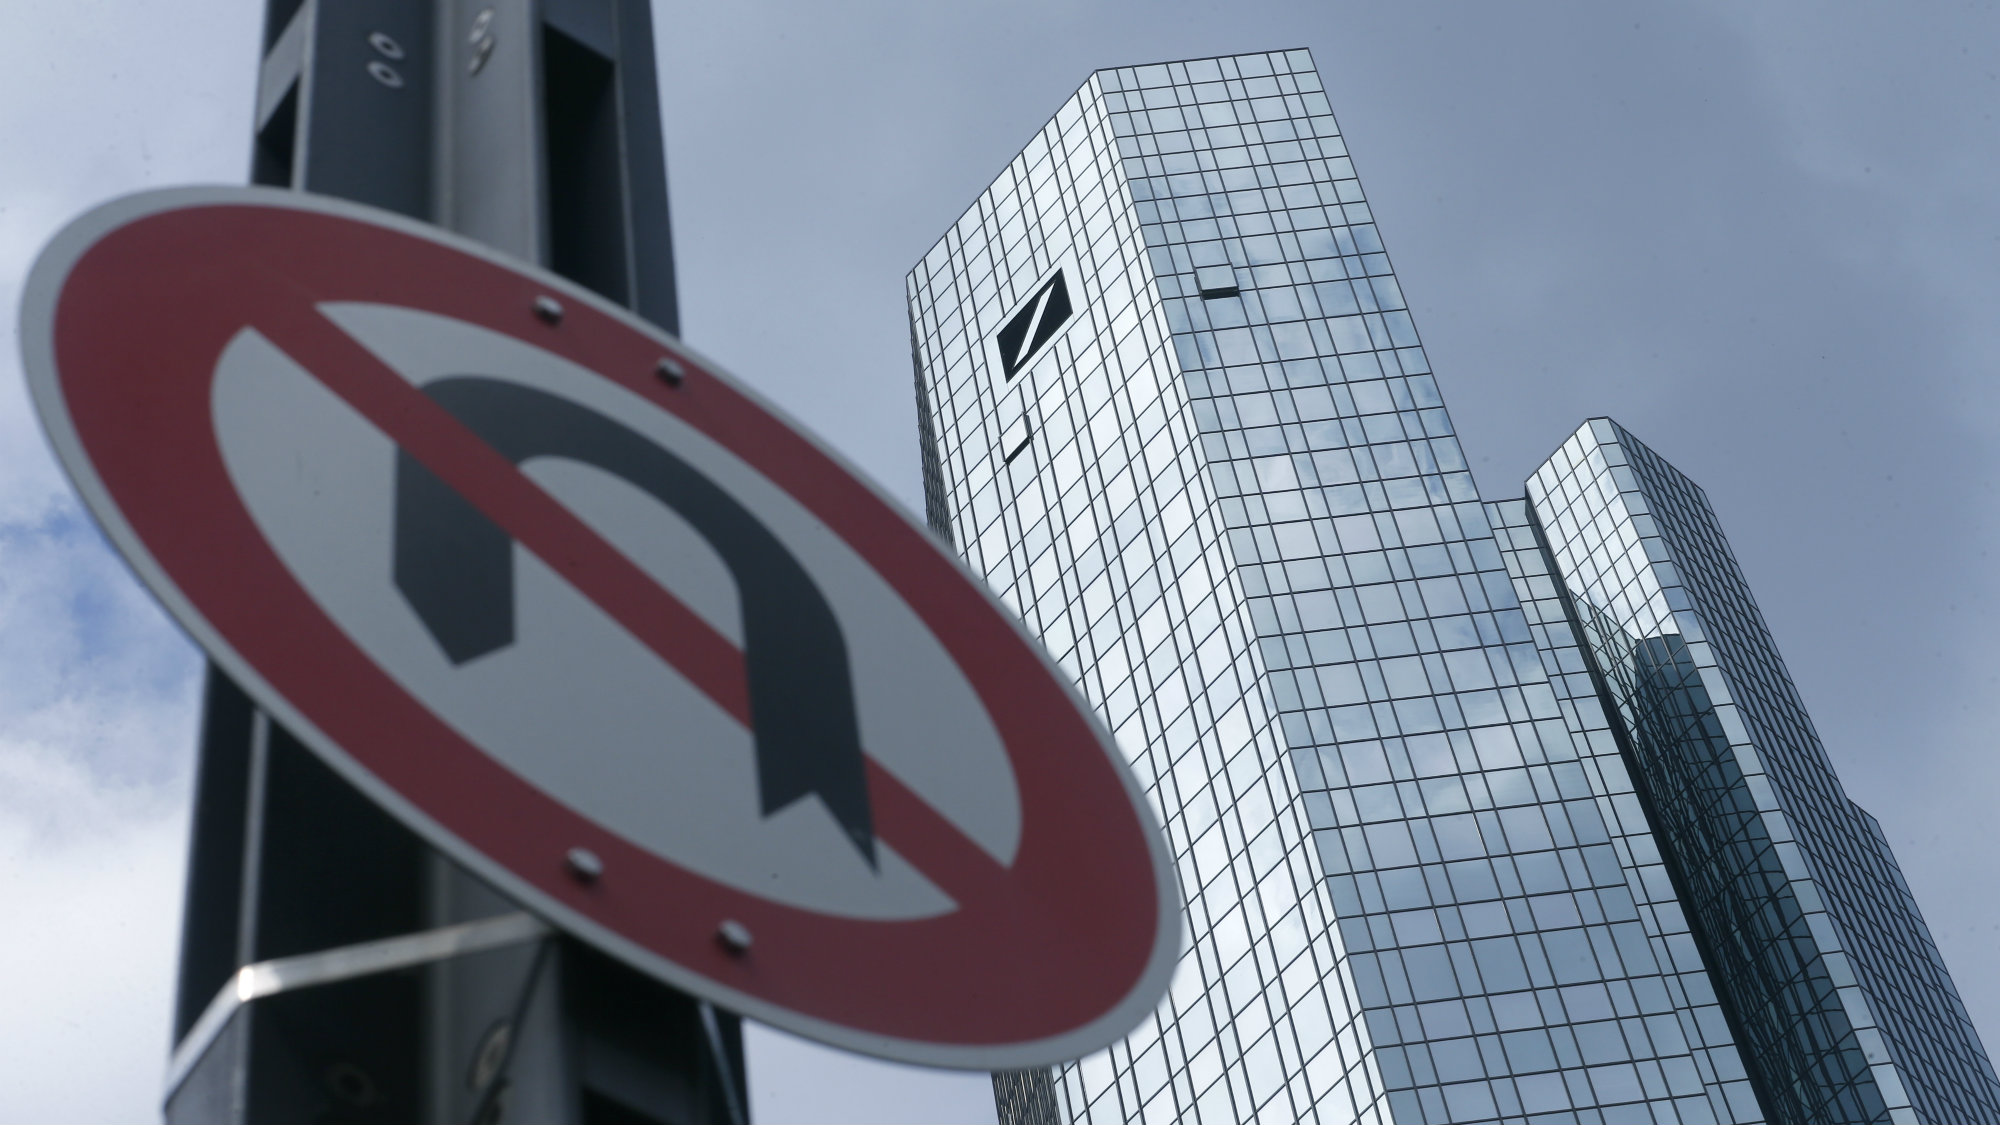 A 'No U-turn' traffic sign stands in front of Deutsche Bank headquarters in Frankfurt, Germany June 9, 2015.